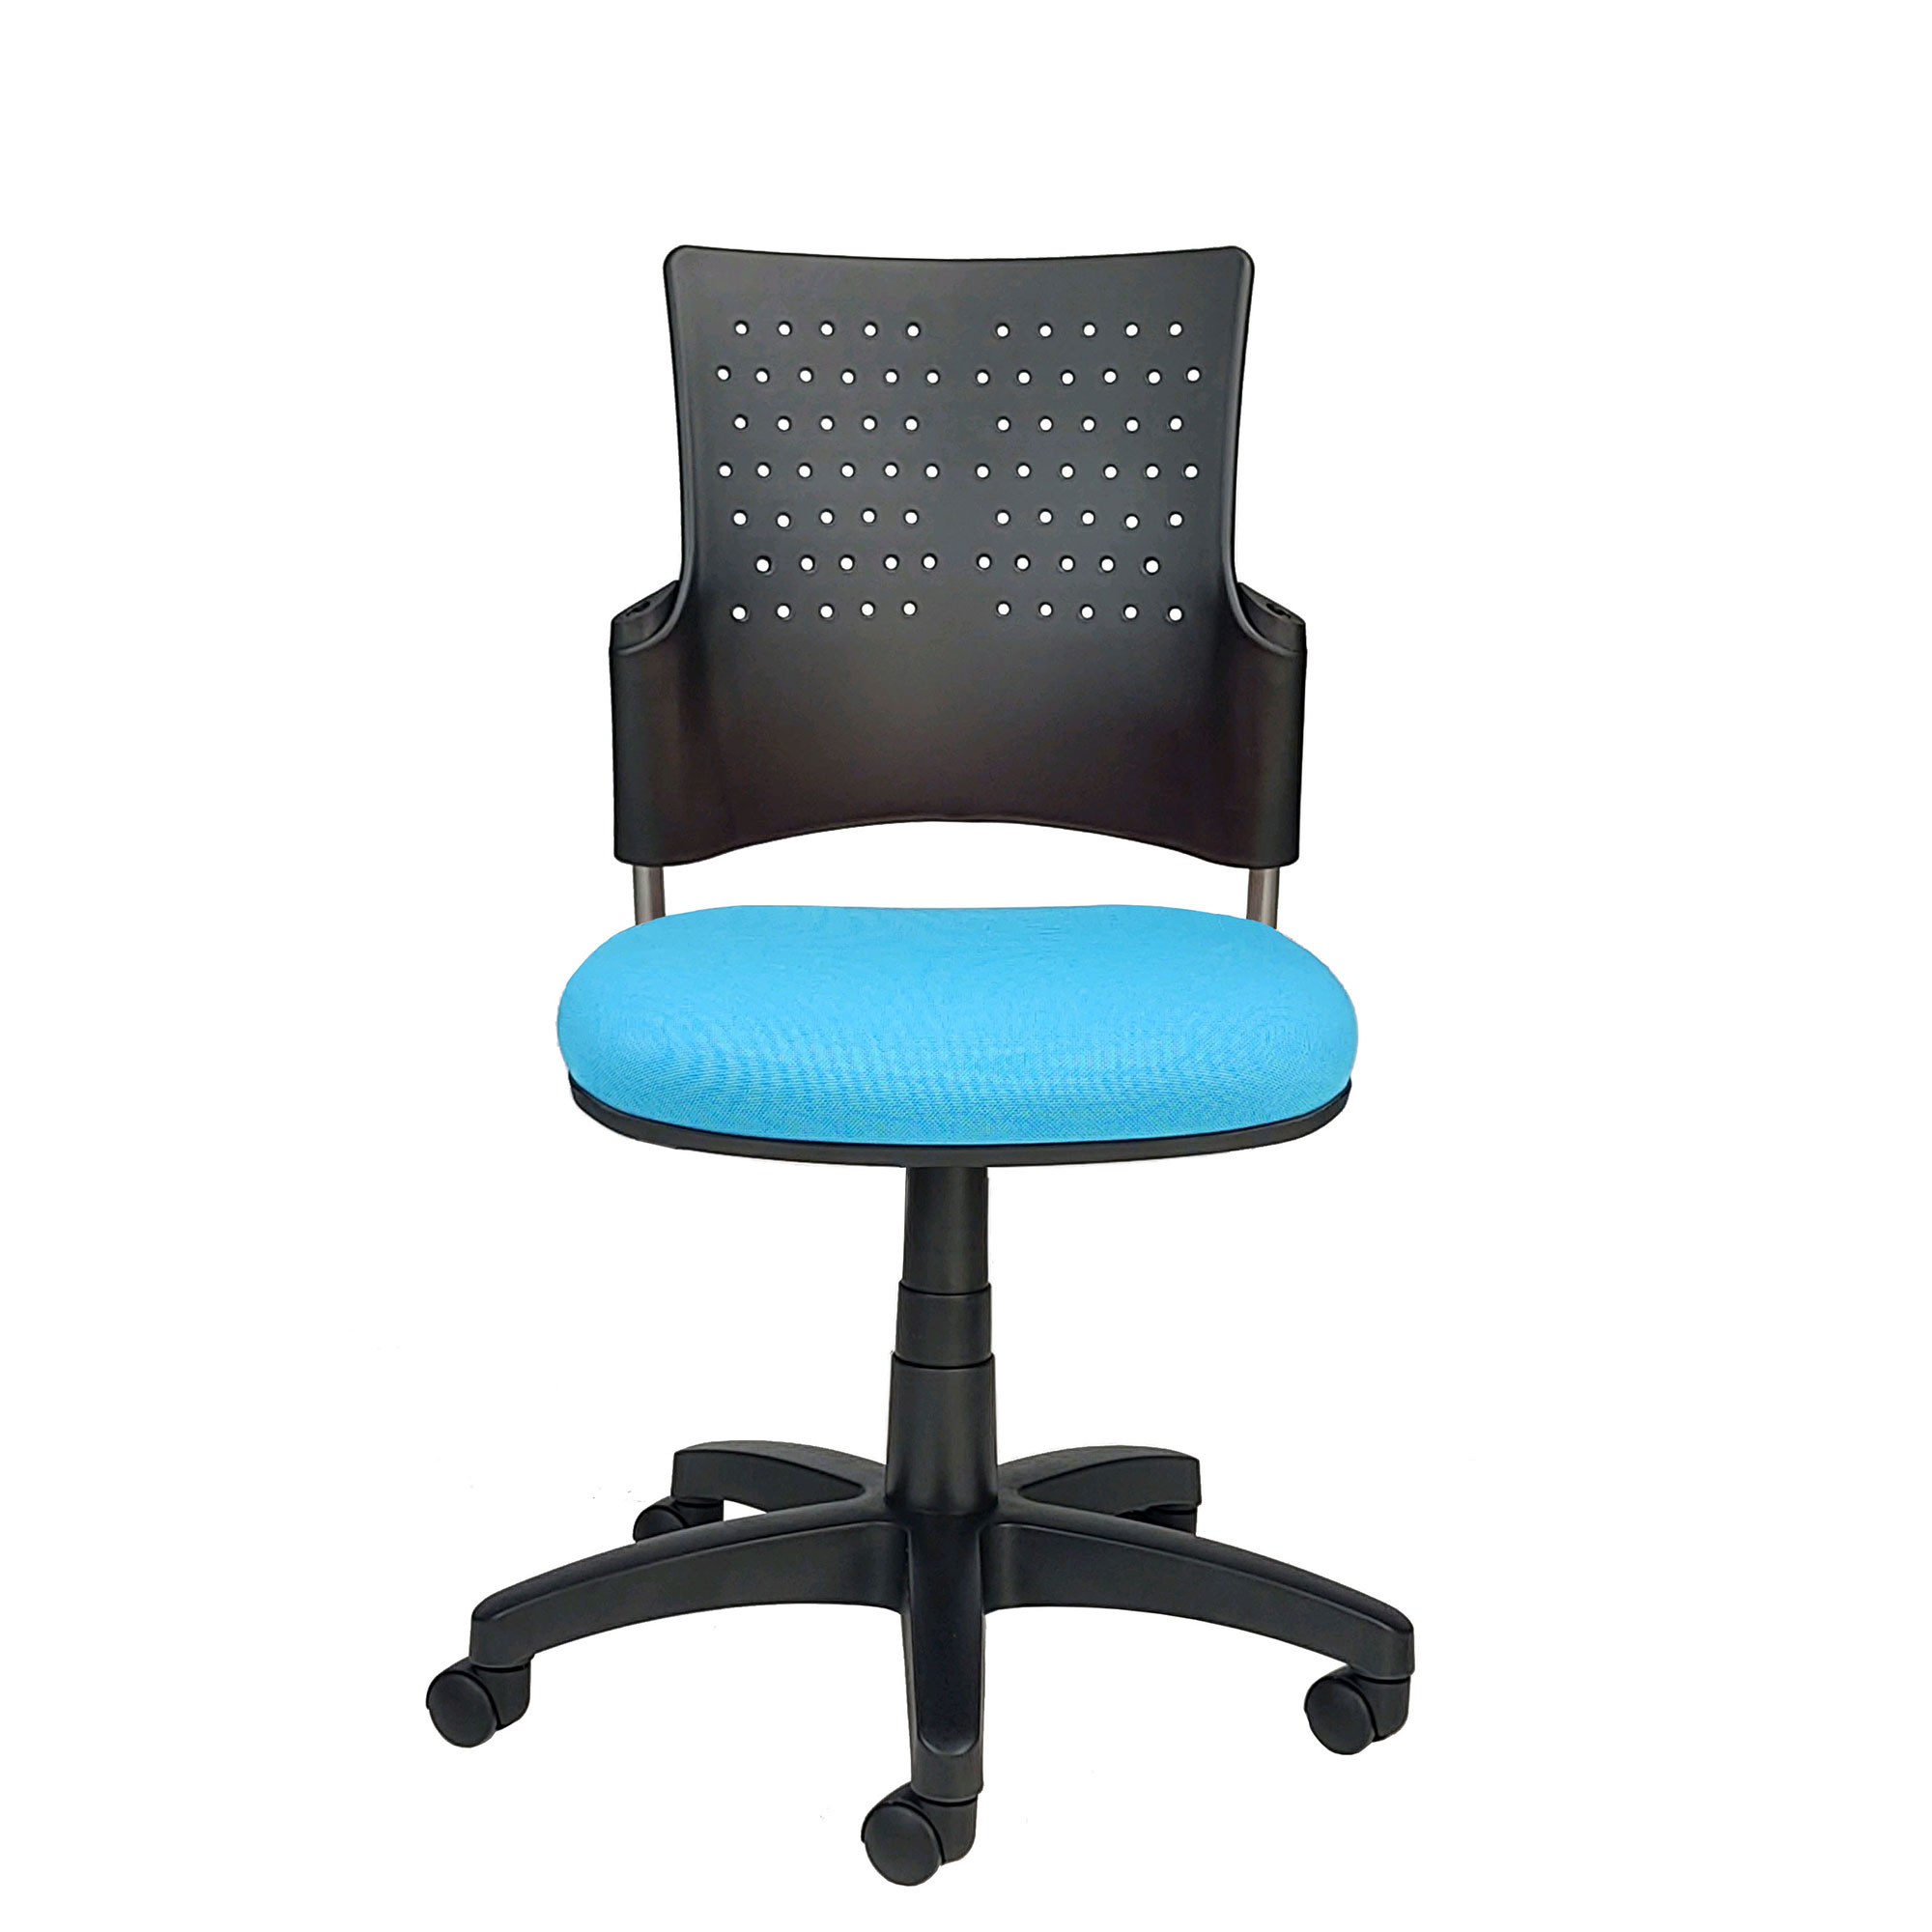 Snap Chair for small offices